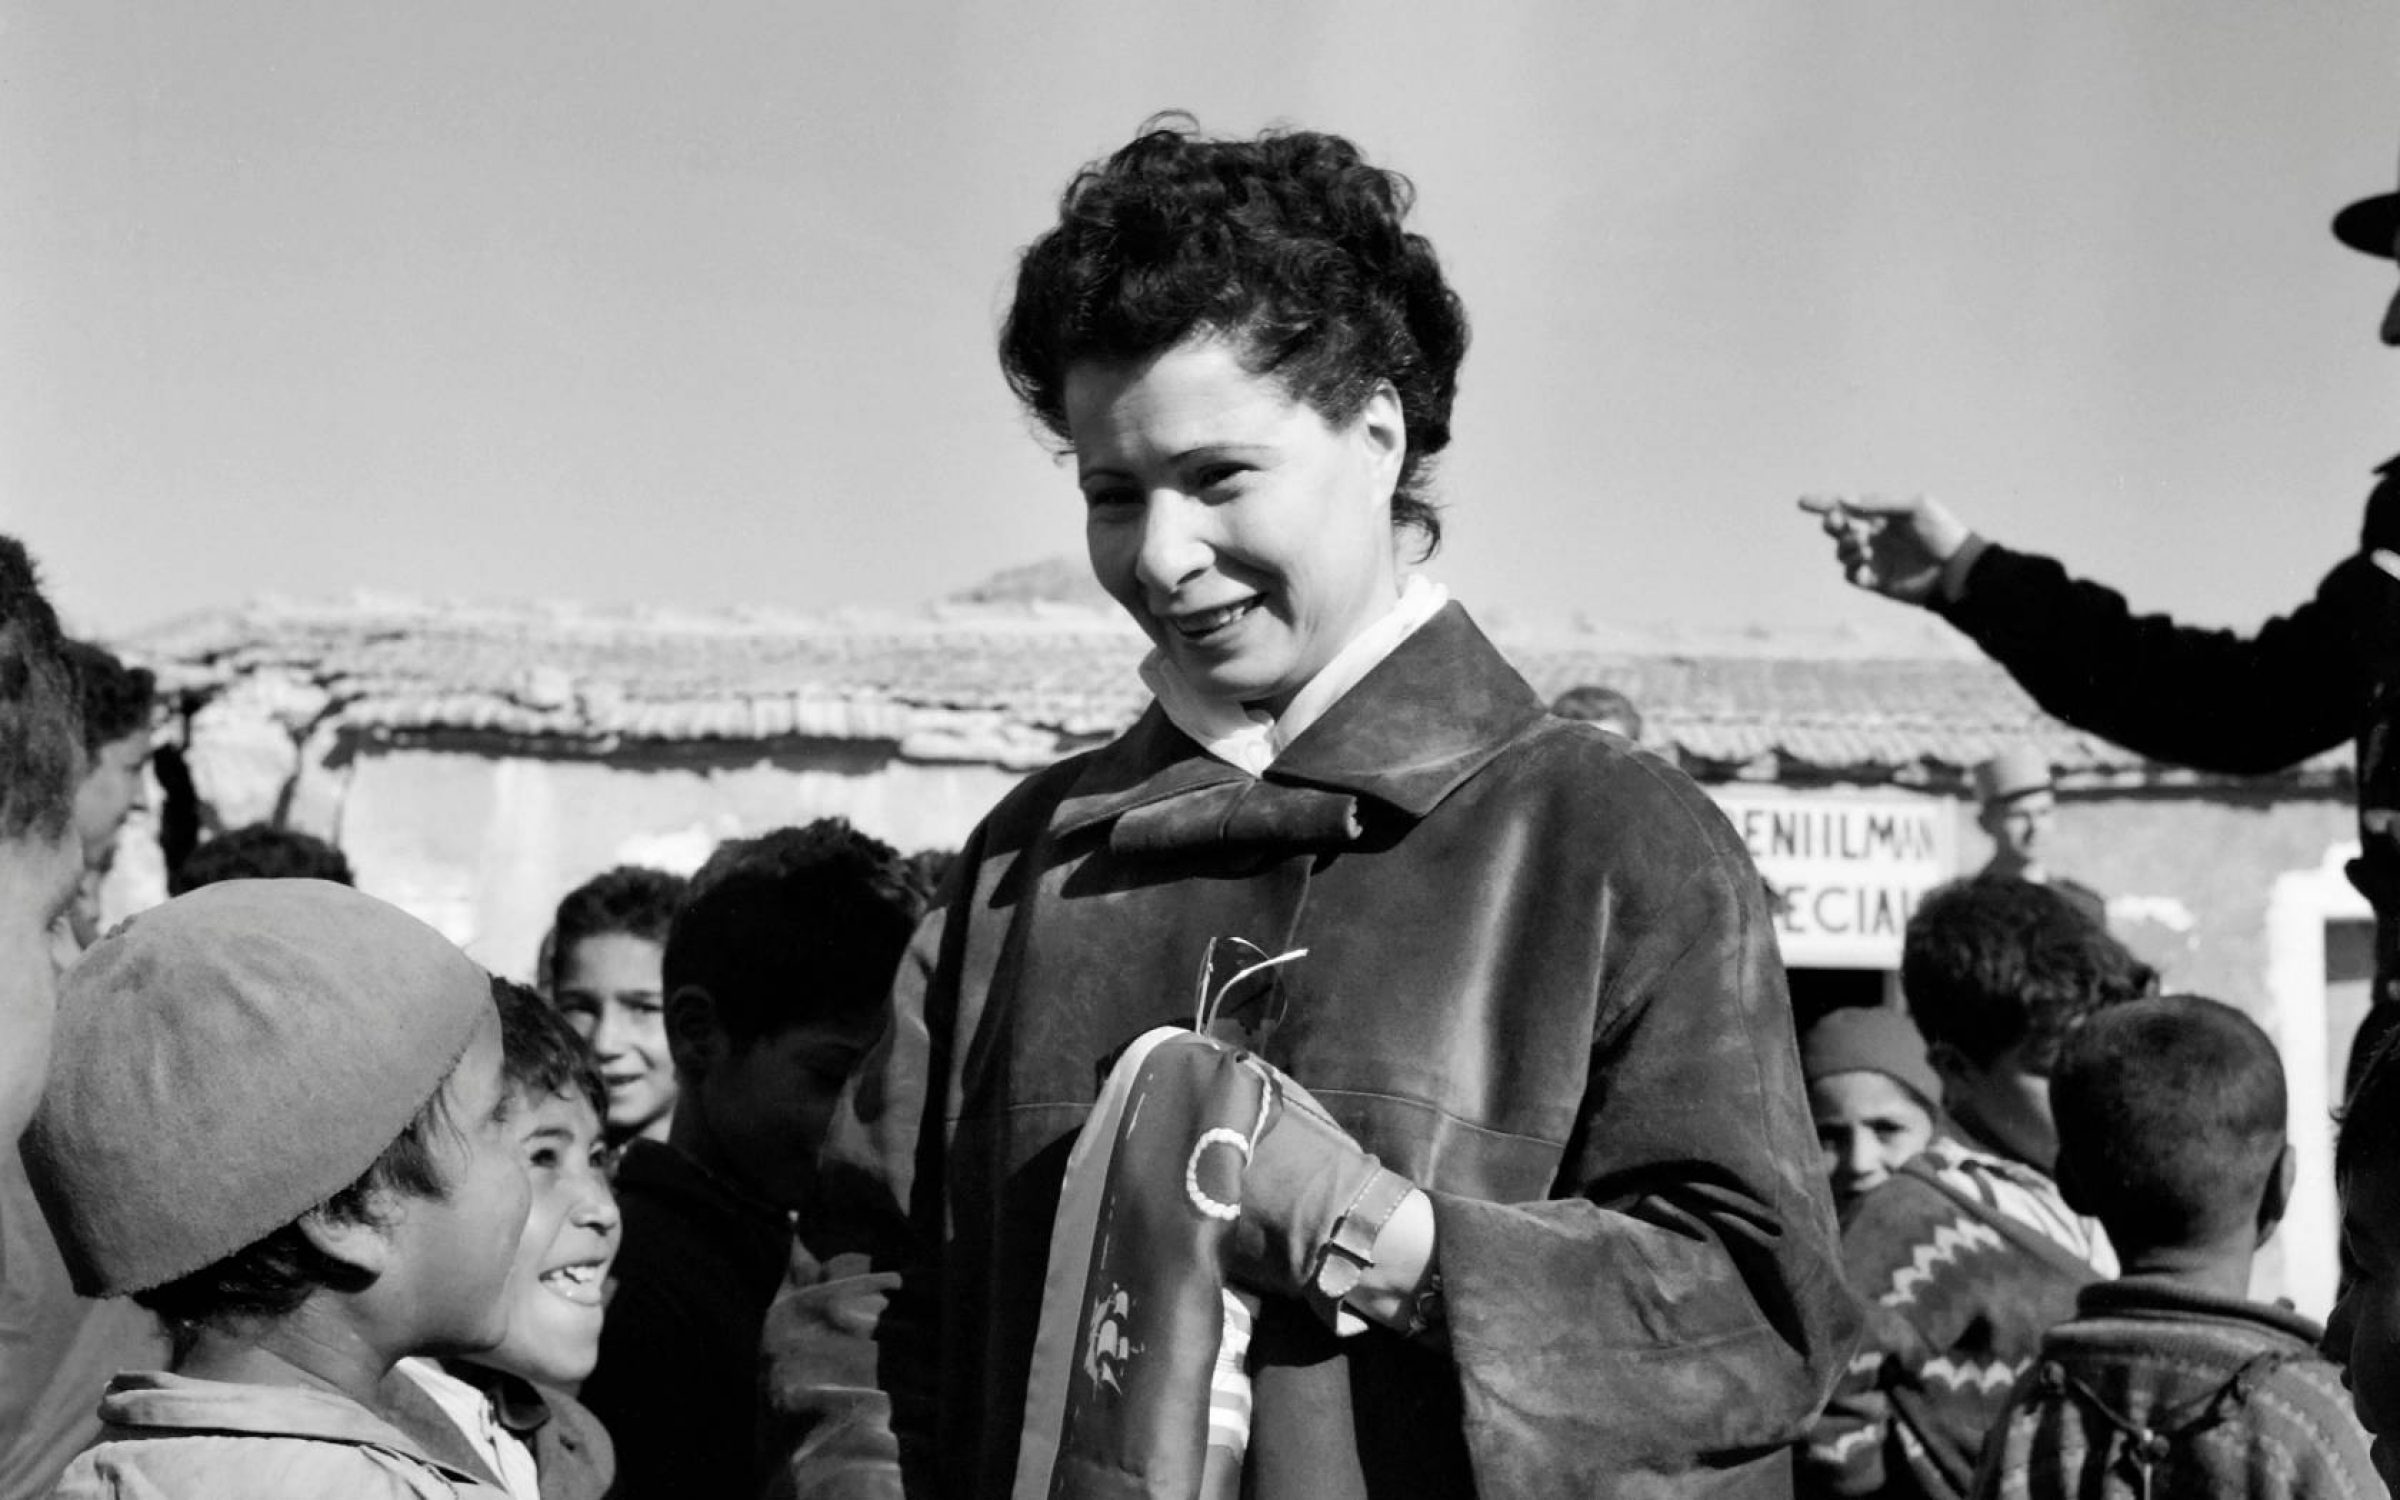 Nafissa Sid Cara talks with children in Algeria in the 1960s. Credit: AFP via Getty Images